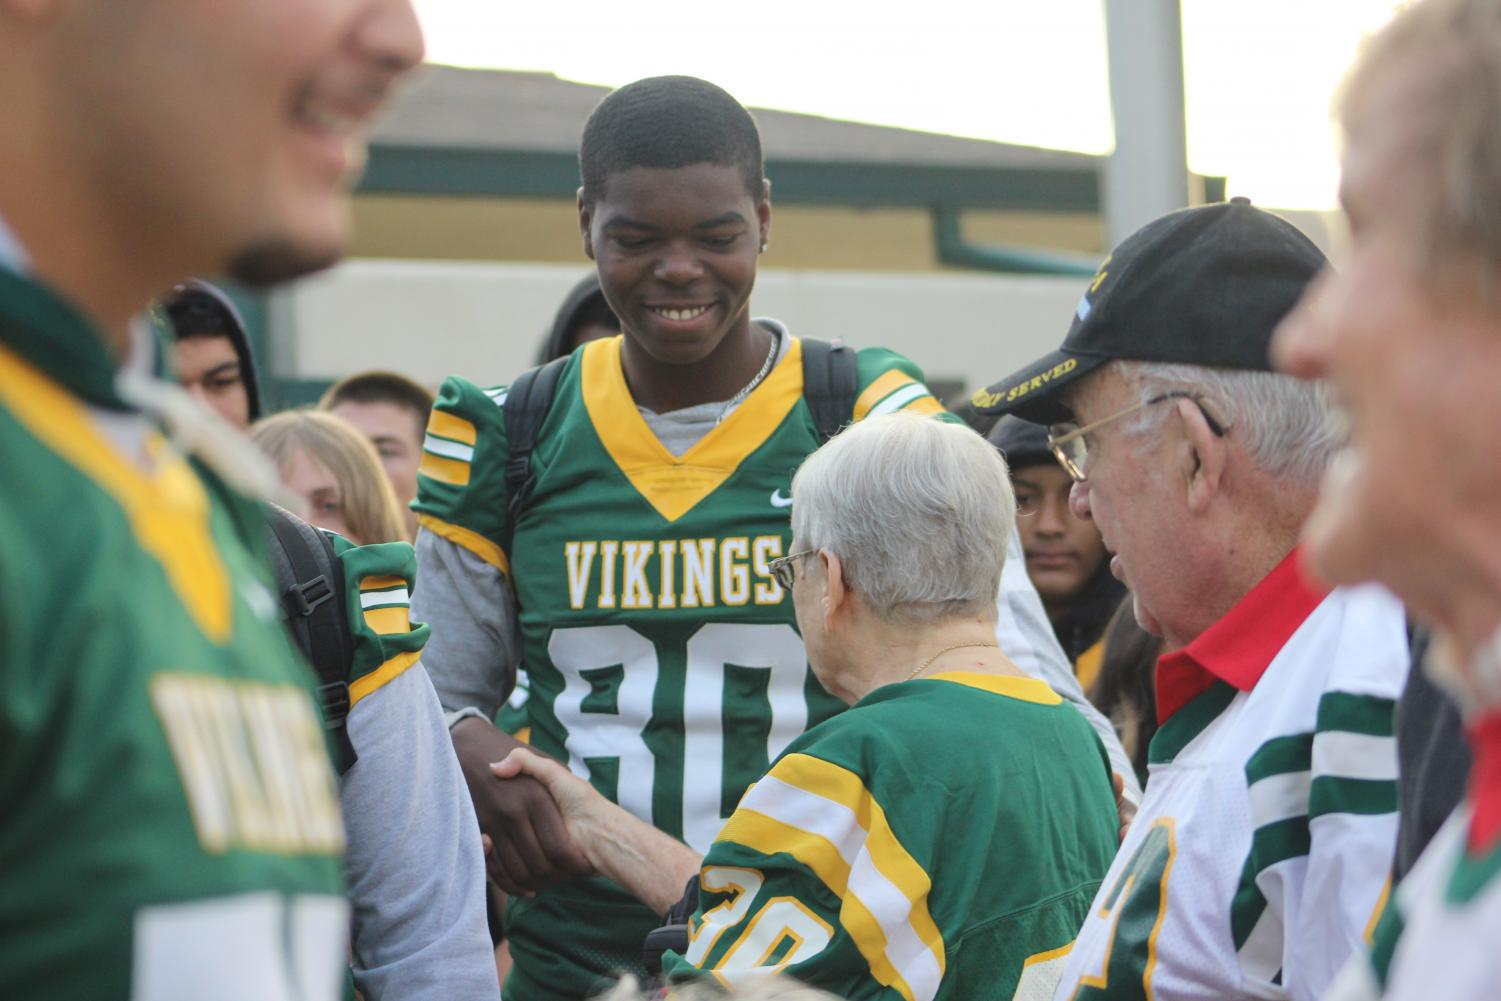 A smiling Aaran Porter sharing his gratitude with citizens of Bakersfield.